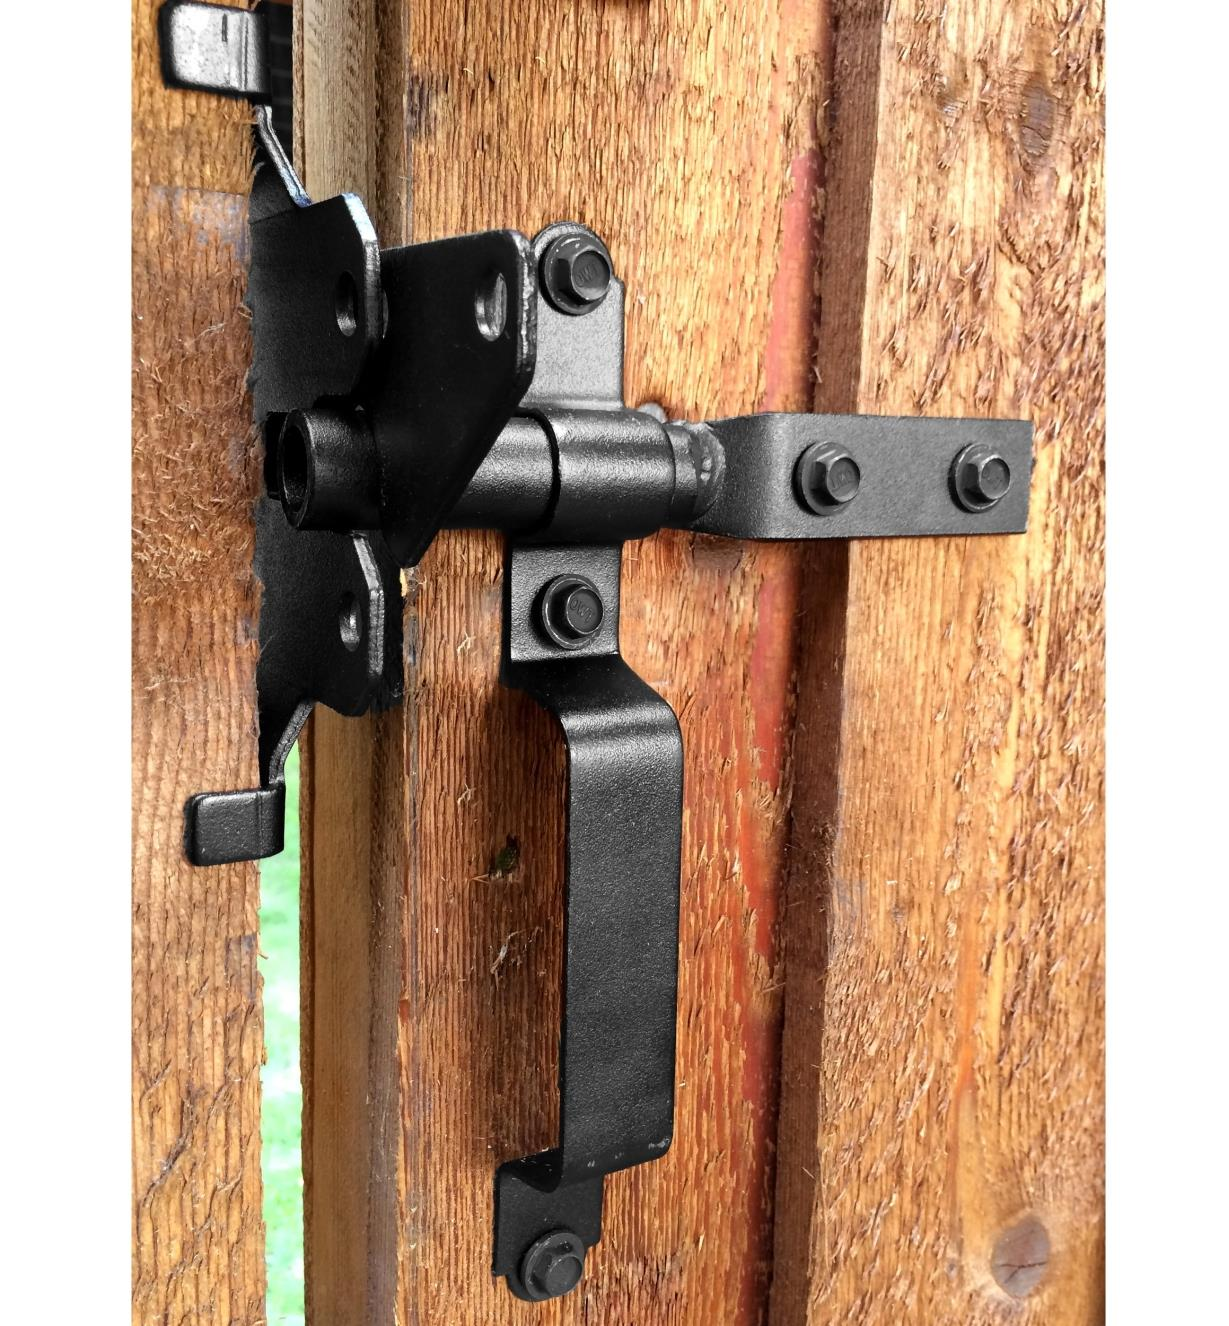 01S1525 - Ozco Gate Latch